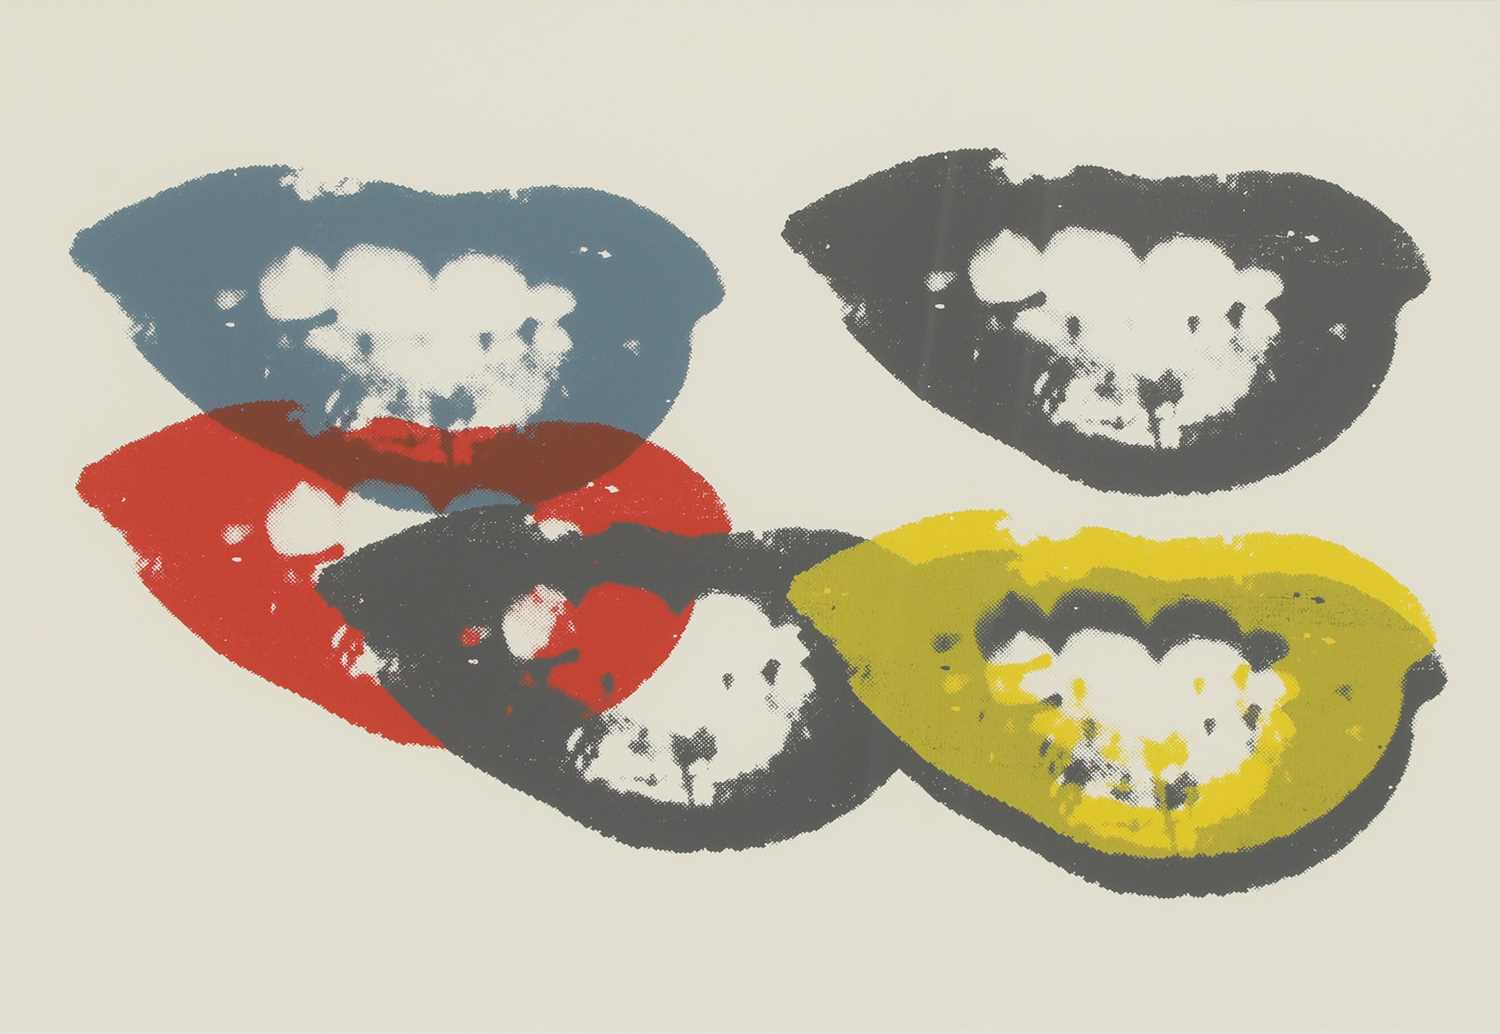 Lot 46-Andy Warhol (American, 1928-1987)